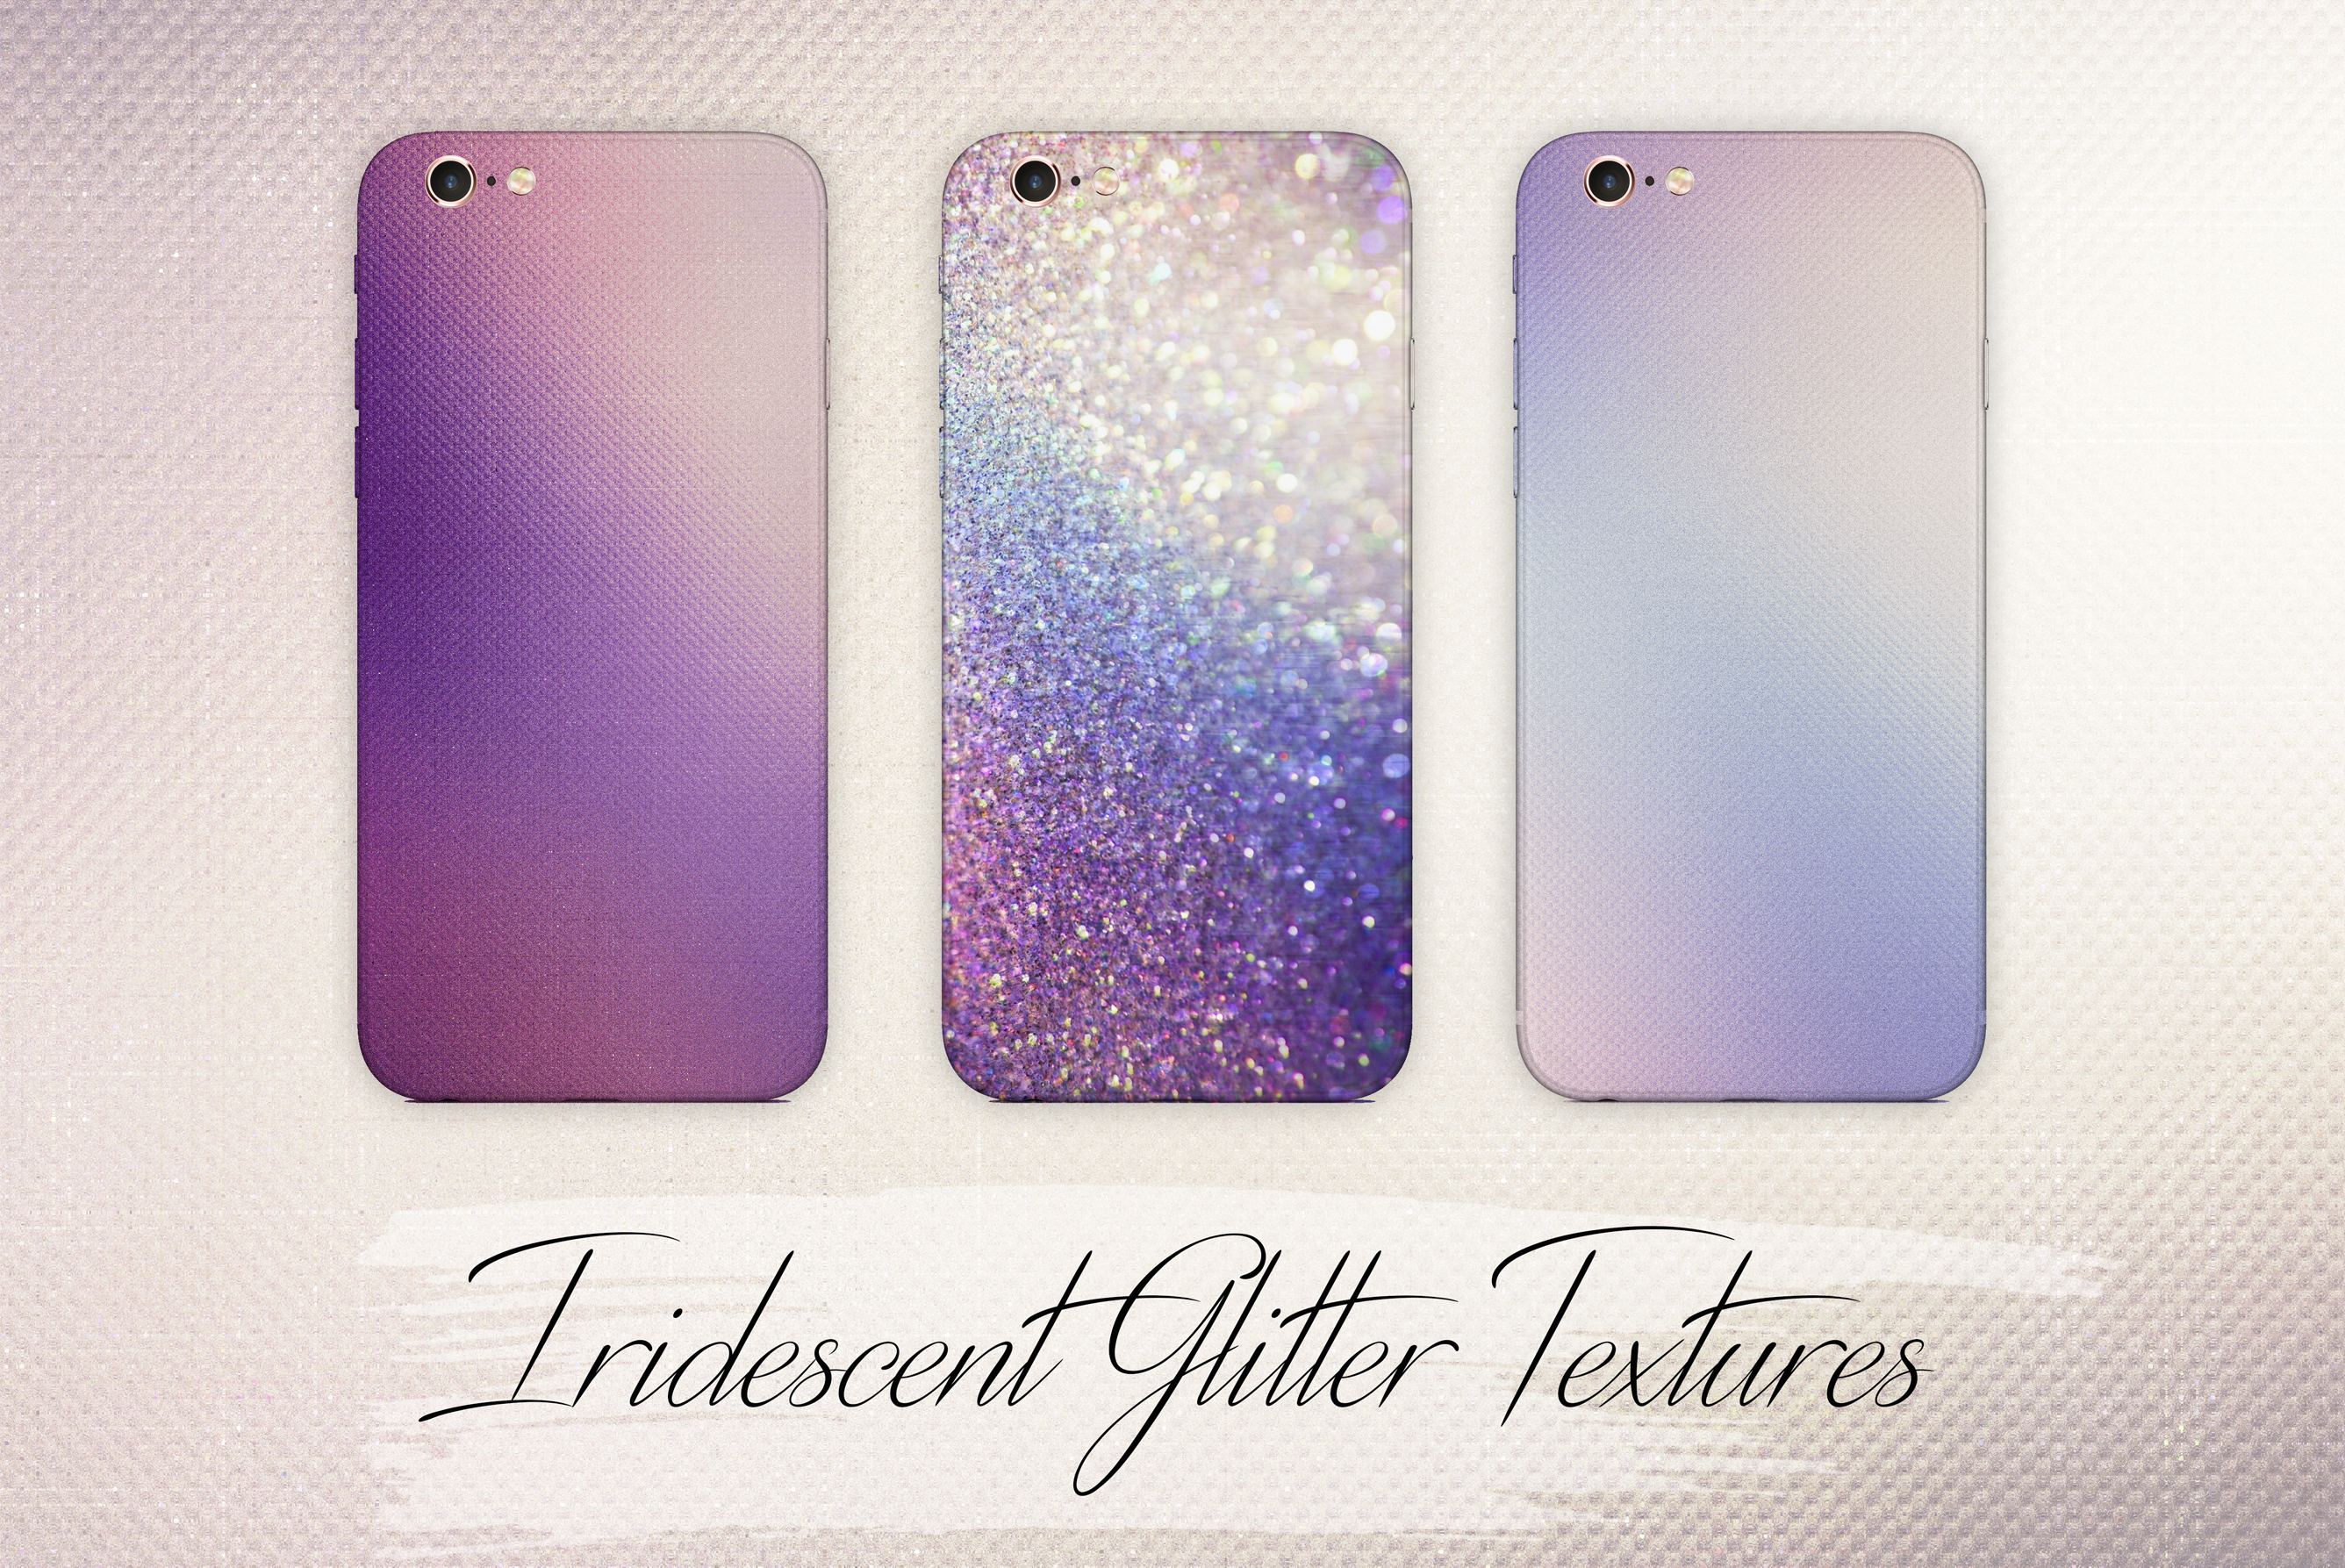 Iridescent and Glitter Textures example image 2